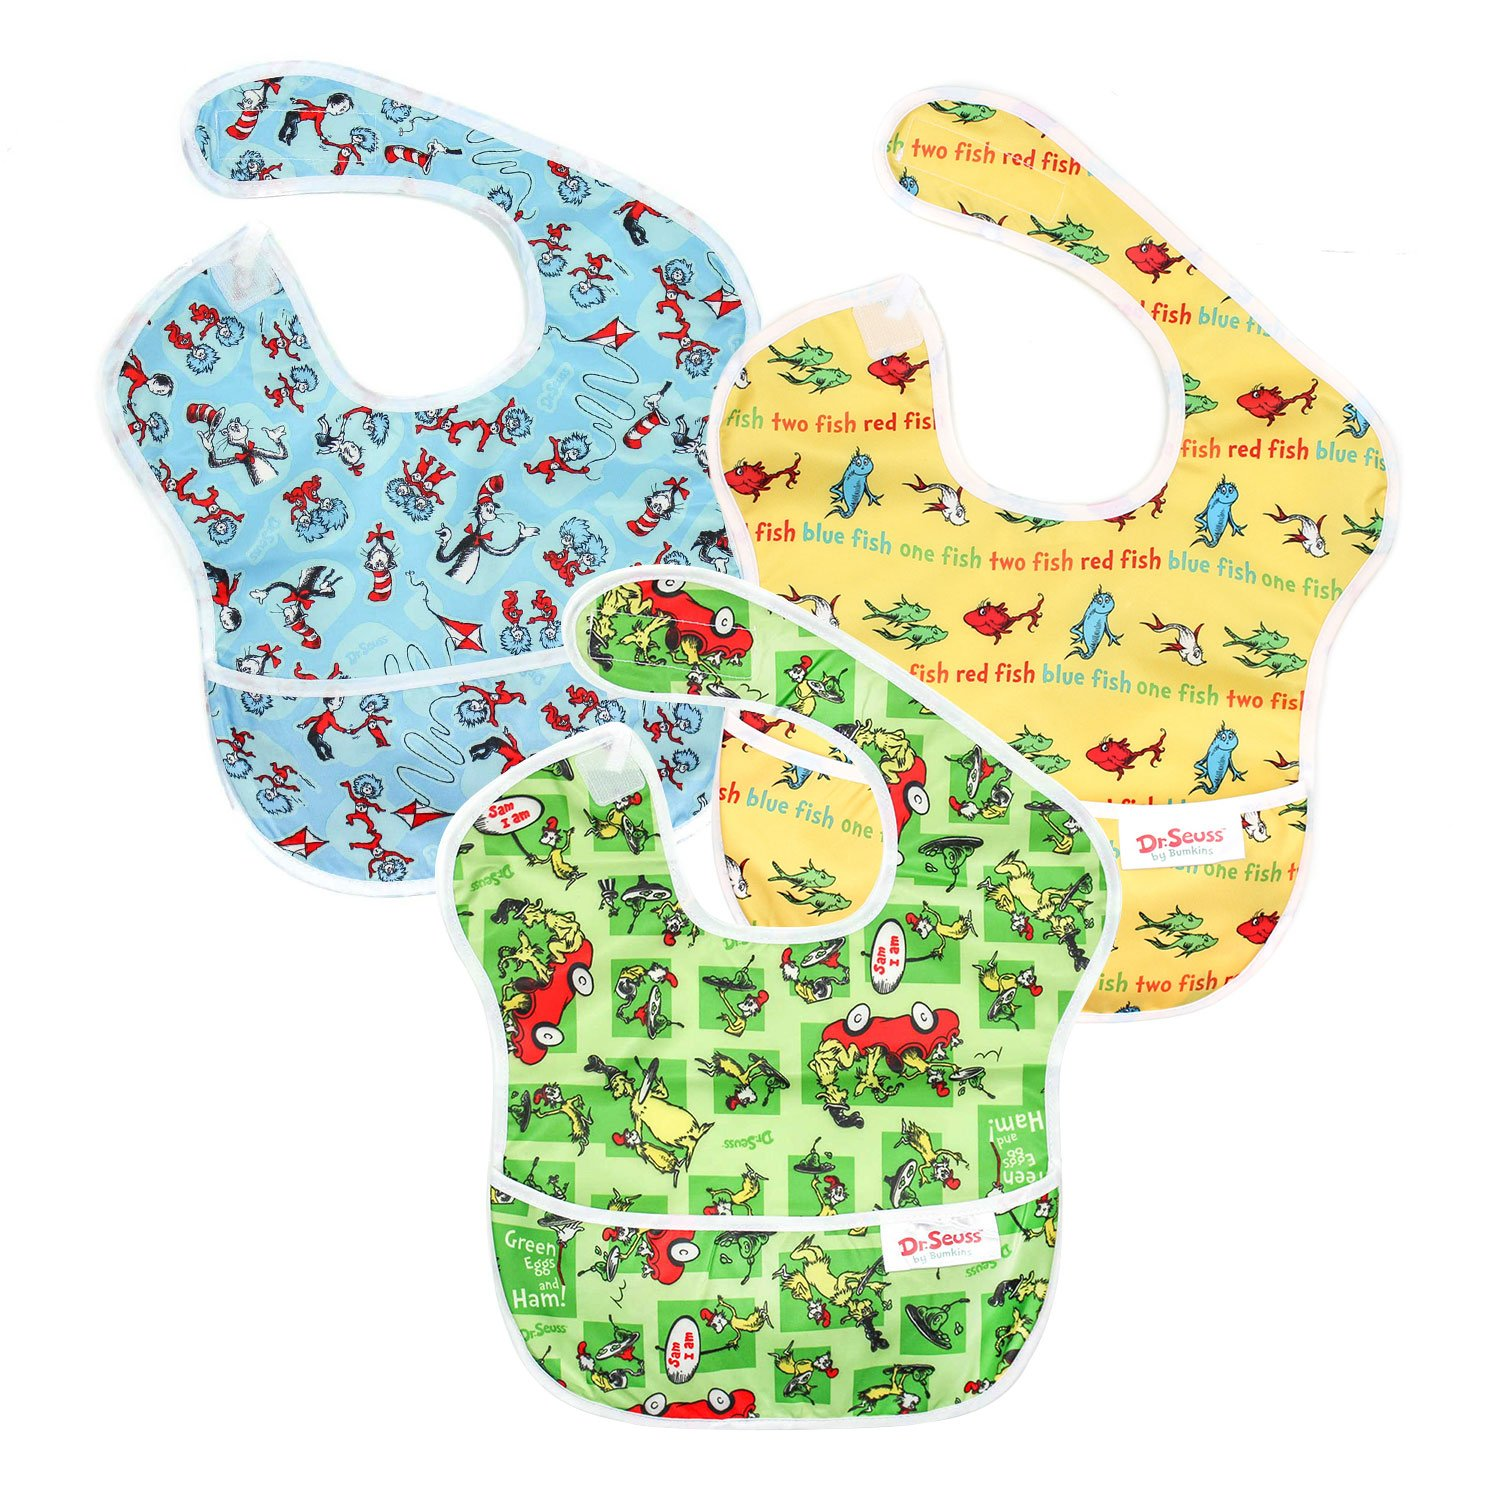 6-24 Months Waterproof Green Eggs Baby Bib Bumkins Dr Seuss SuperBib Stain and Odor Resistant Cat In The Hat Washable Yellow Fish 3-Pack